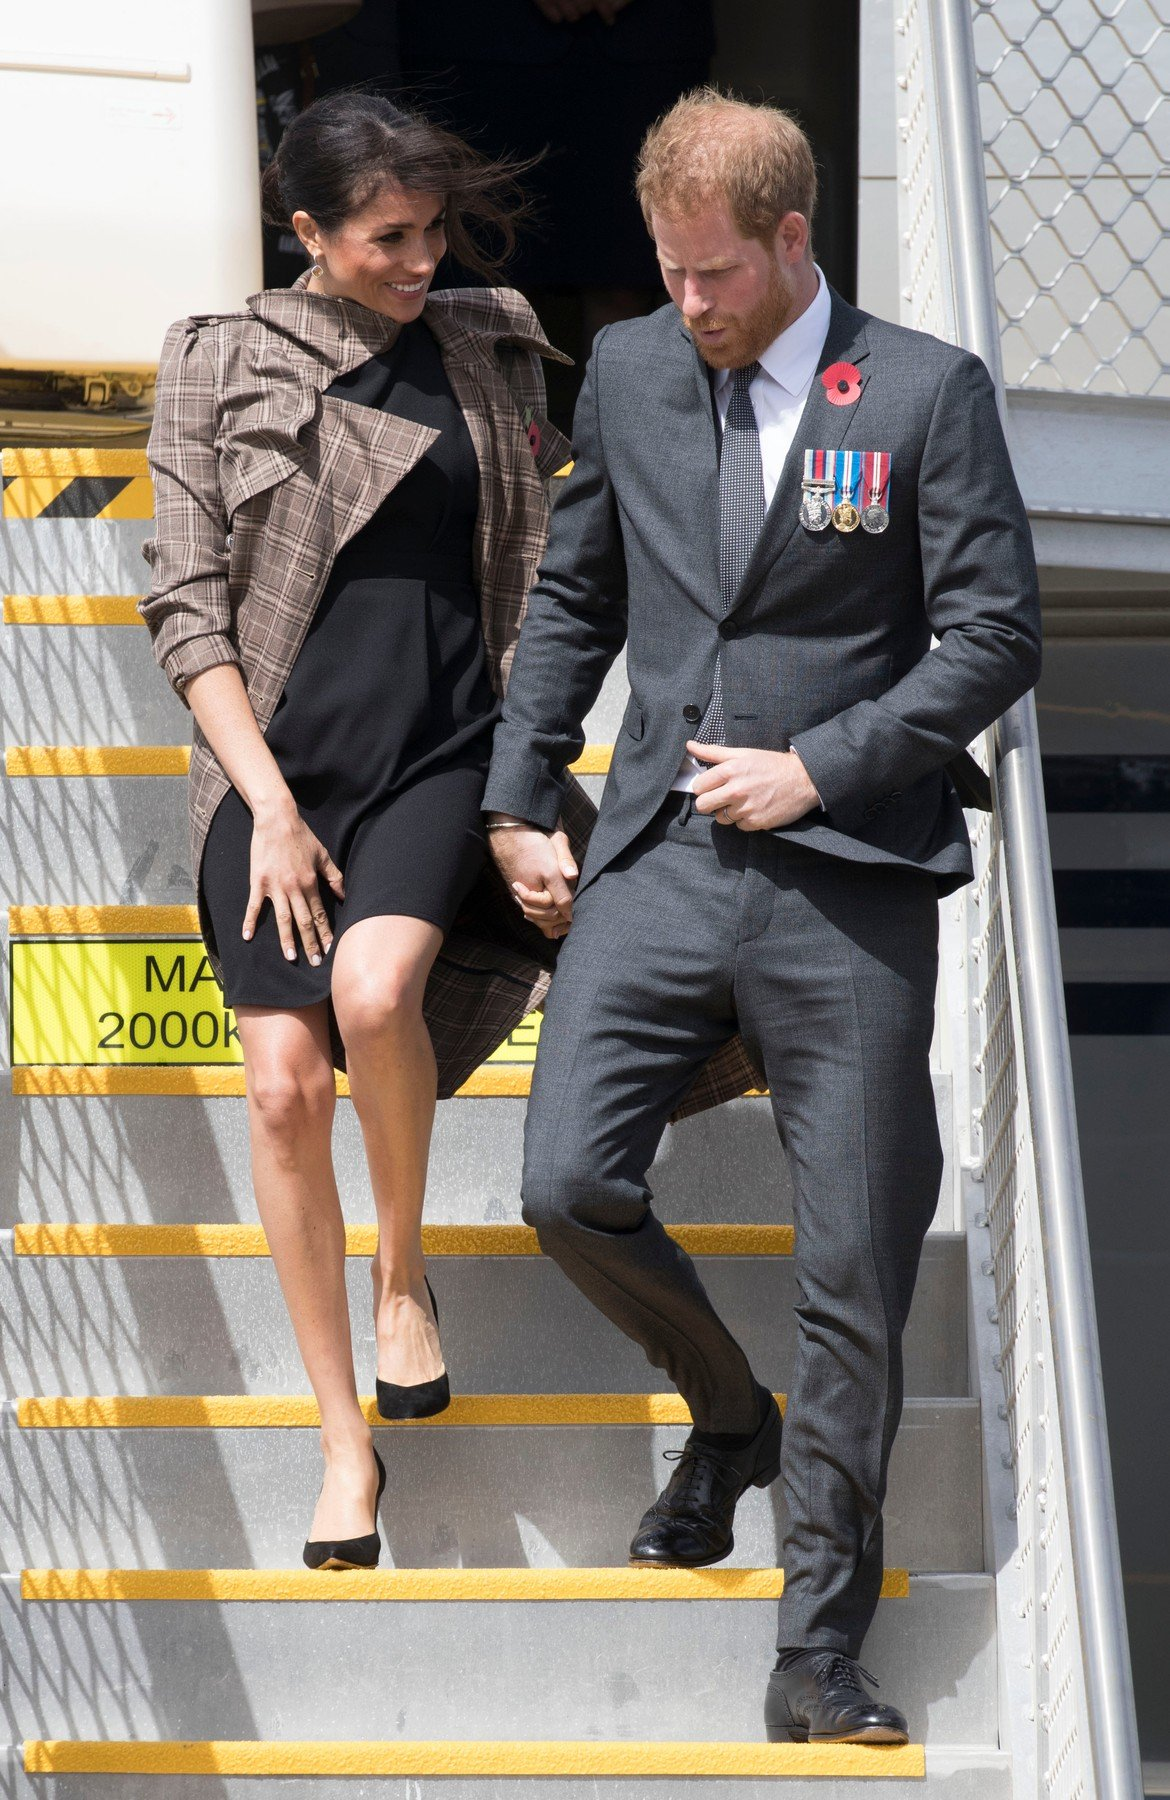 Prince Harry and Meghan Duchess of Sussex arriving in Wellington airport, New Zealand, where they met New Zealand Invictus Games competitors, on day thirteen of their Royal Tour Prince Harry and Meghan Duchess of Sussex tour of New Zealand - 28 Oct 2018, Image: 392935293, License: Rights-managed, Restrictions: , Model Release: no, Credit line: Profimedia, TEMP Rex Features